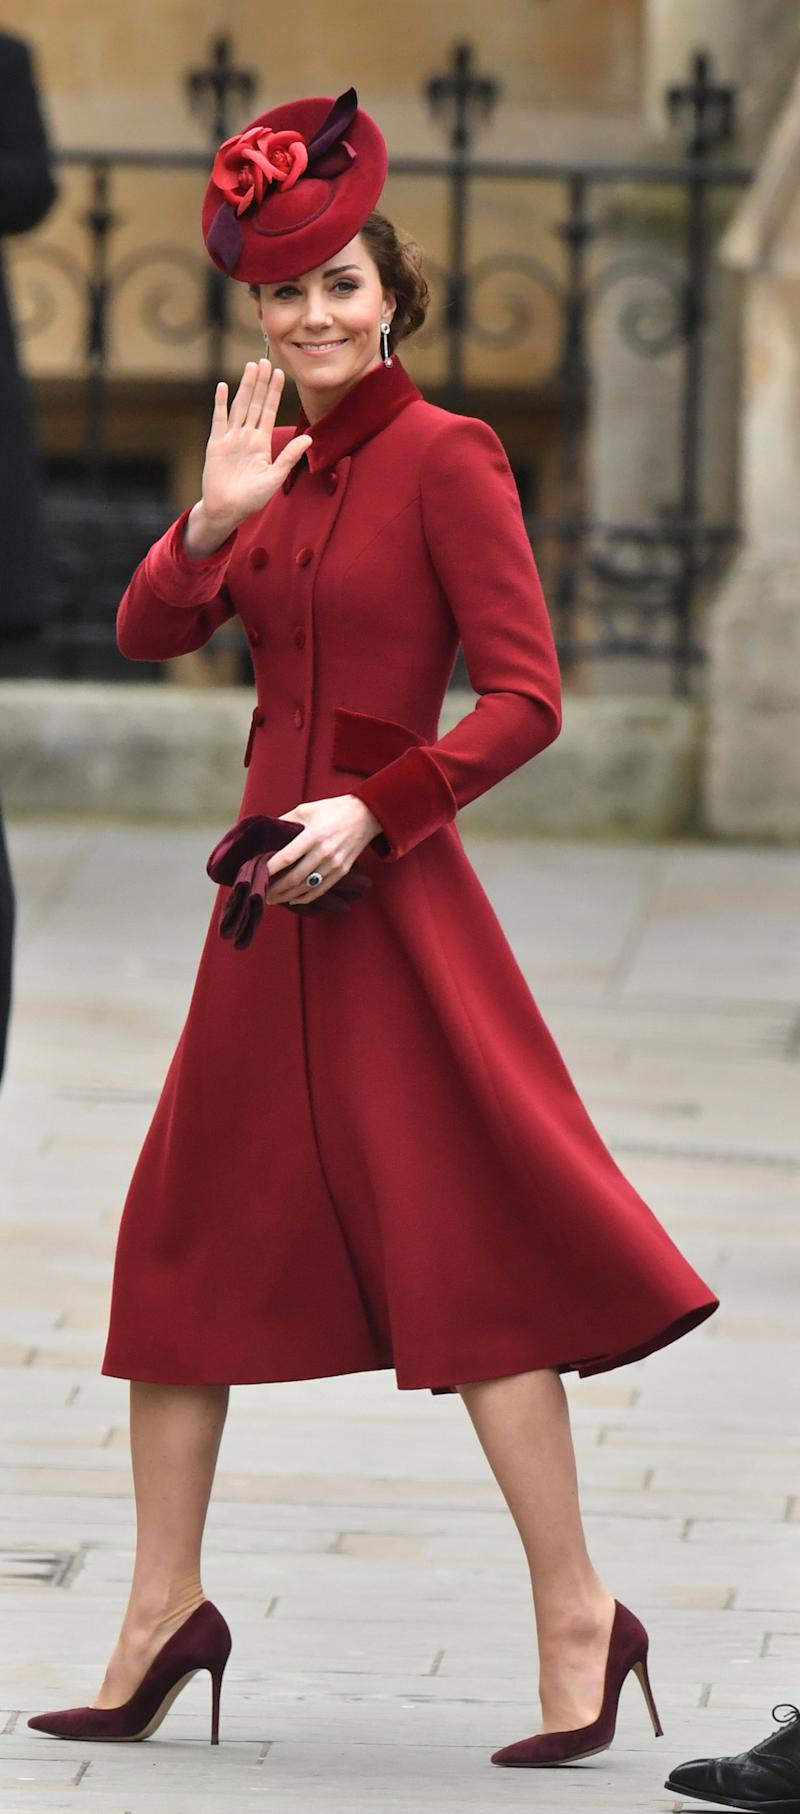 Kate Middleton attended the service in a garnet-hued Catherine Walker dress. (Photo: Dominic Lipinski/PA Images via Getty Images)